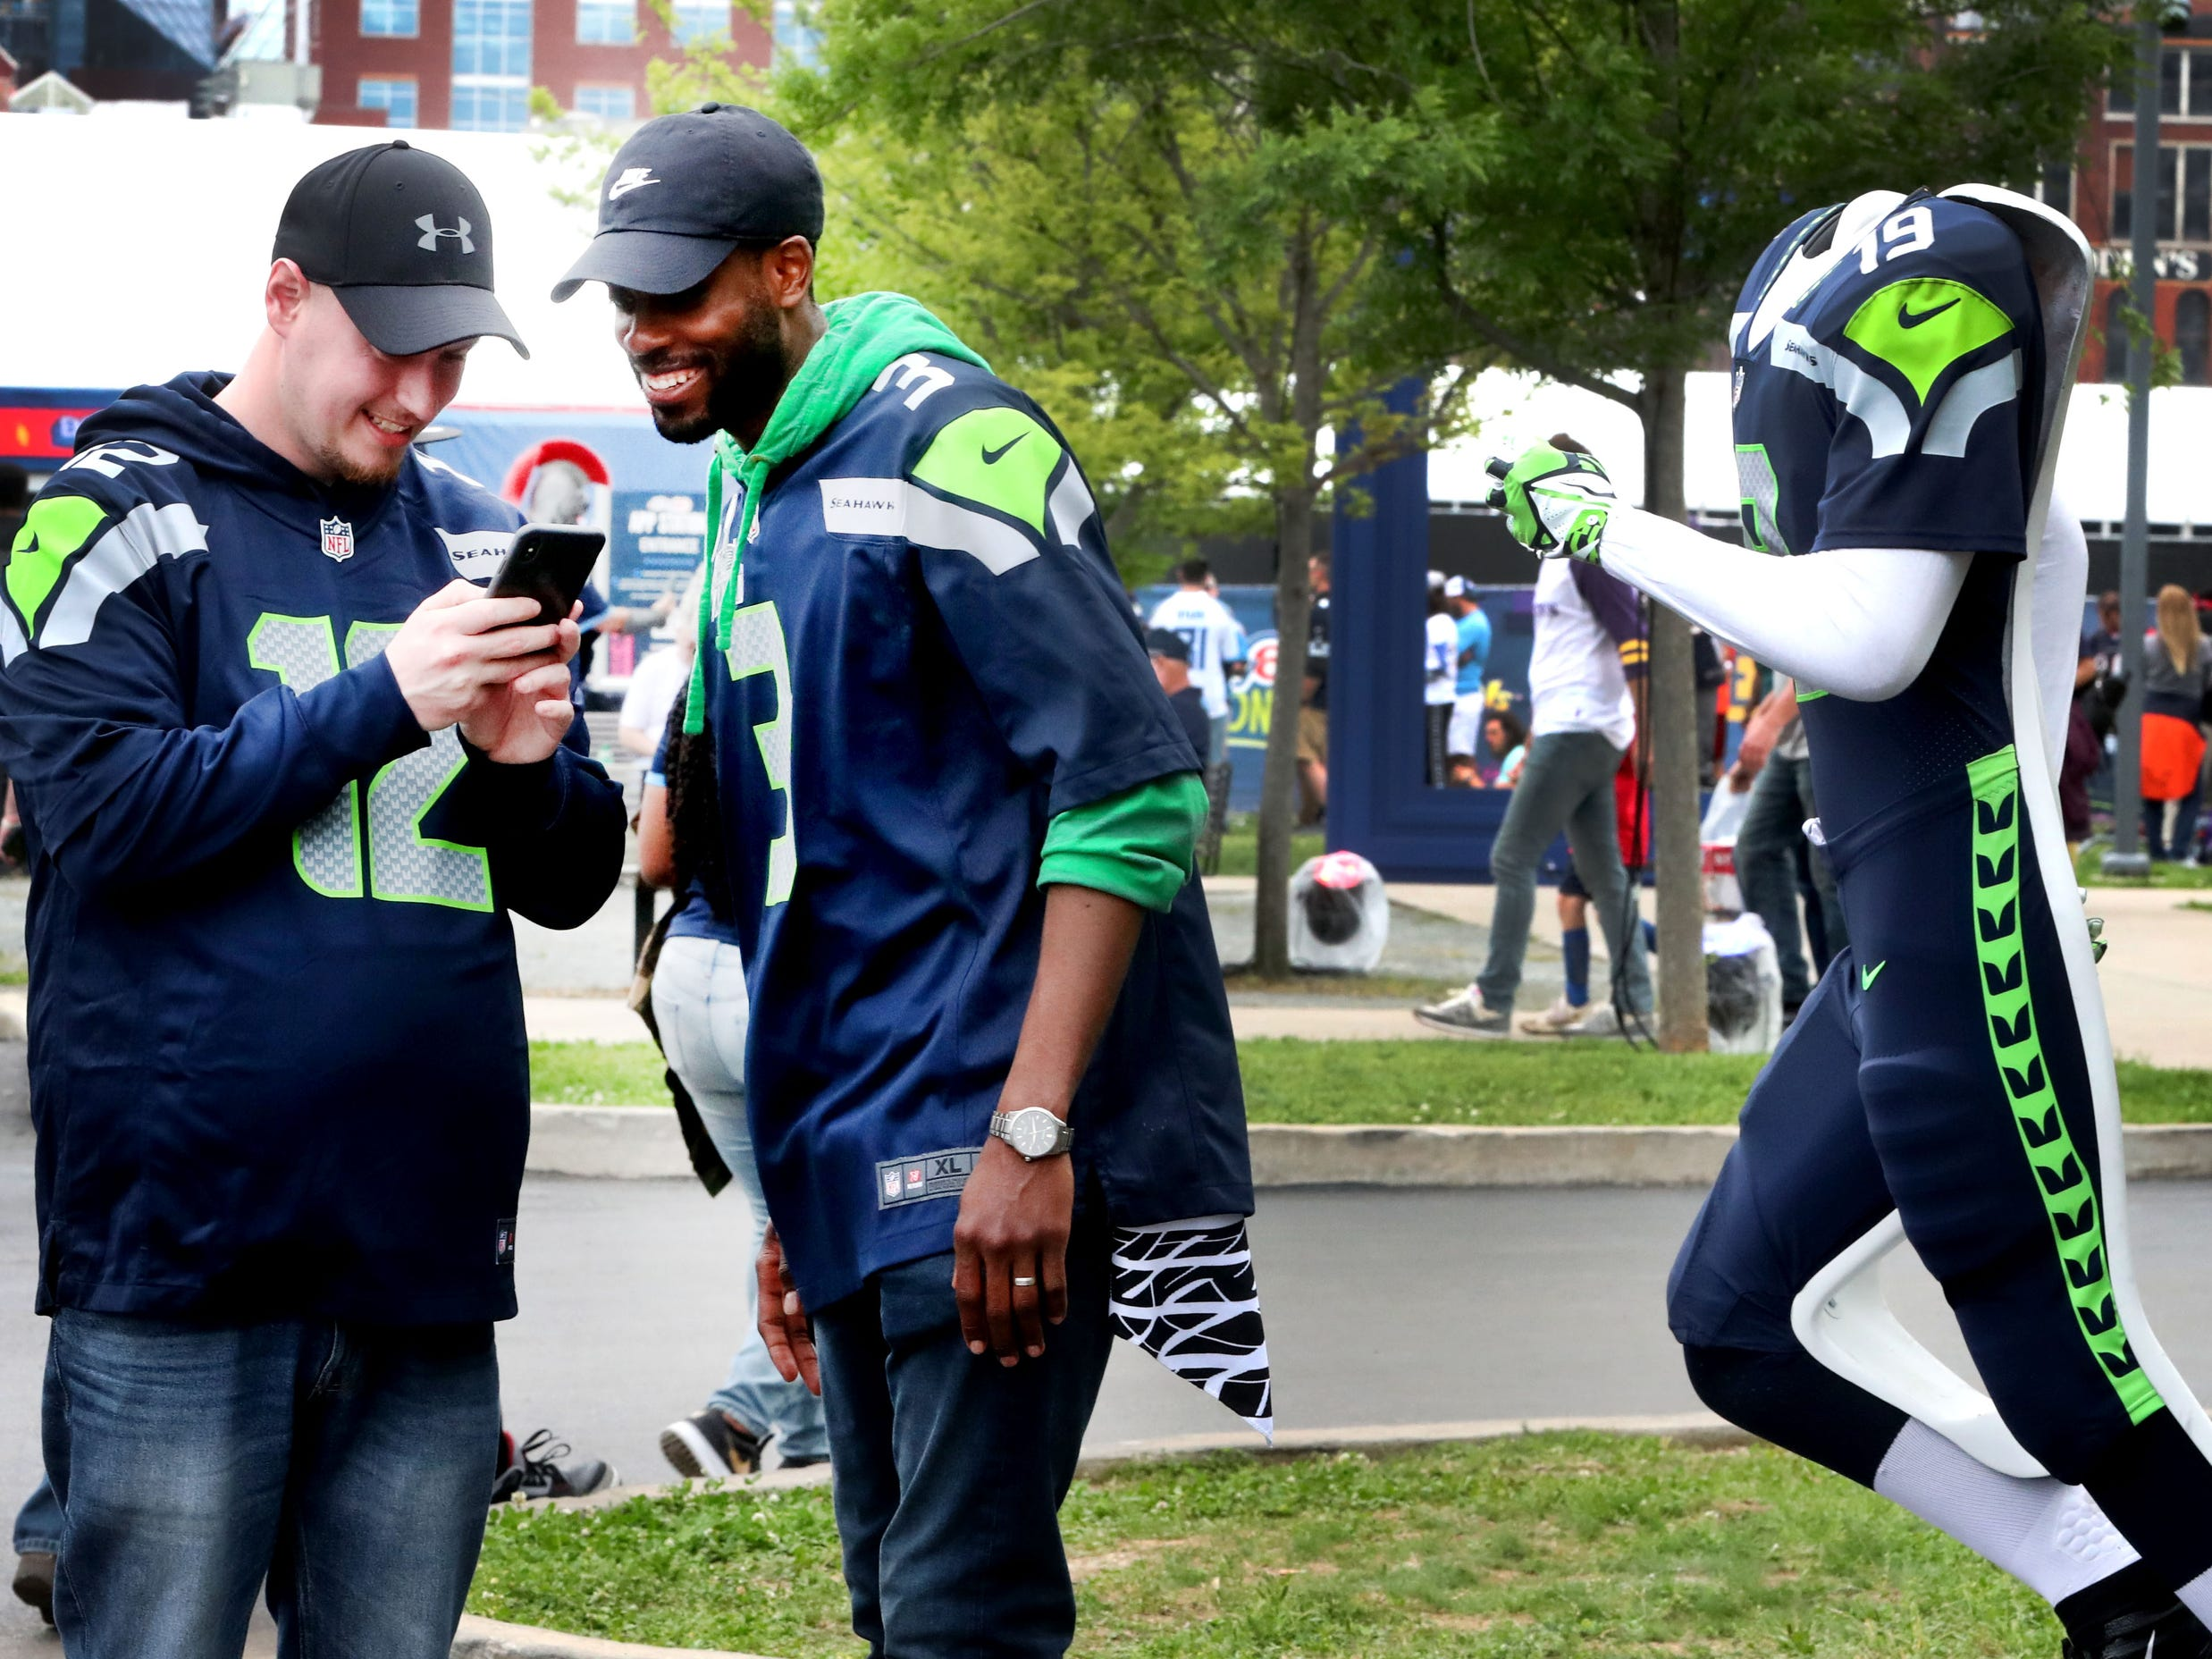 Chris Chambers, left and Marcus Wilson, right look at a picture that Chambers took of Wilson behind the Seattle Seahawk uniform at the NFL Draft Experience, at Nissan Stadium on Thursday, April 25, 2019, in Nashville, Tennessee.